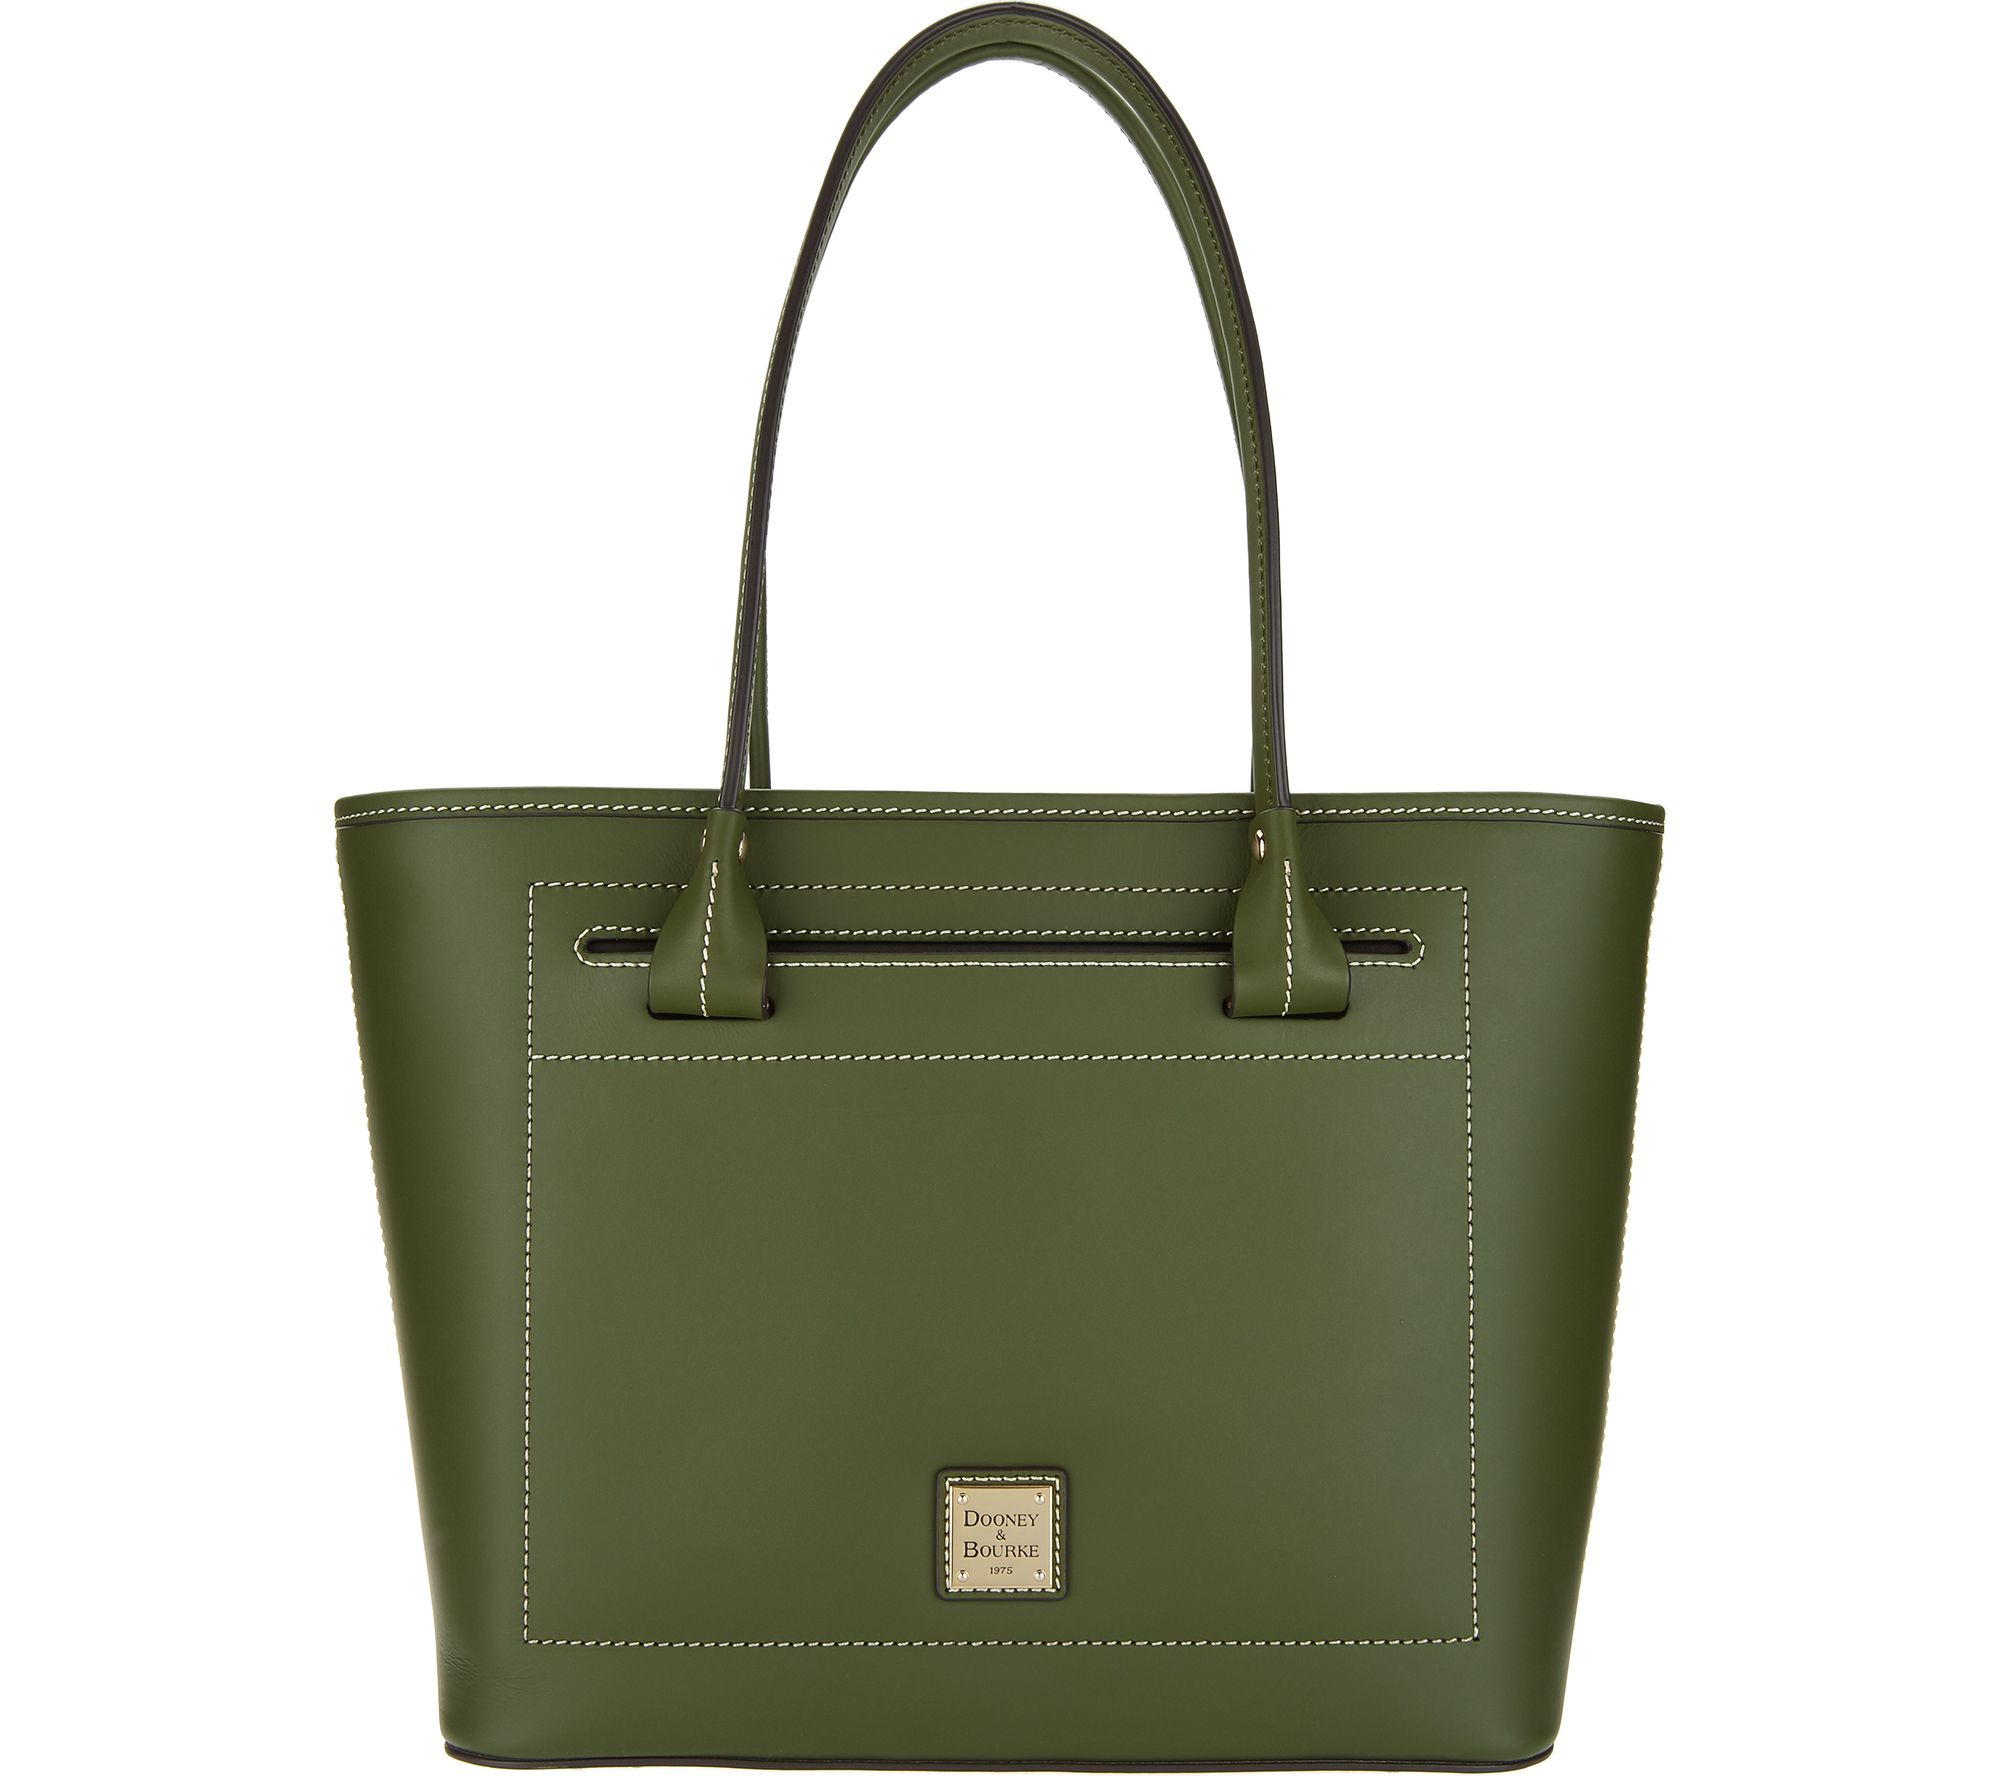 872464e59b3985 Dooney & Bourke Leather Beacon Collection Slip Tote - Page 1 — QVC.com